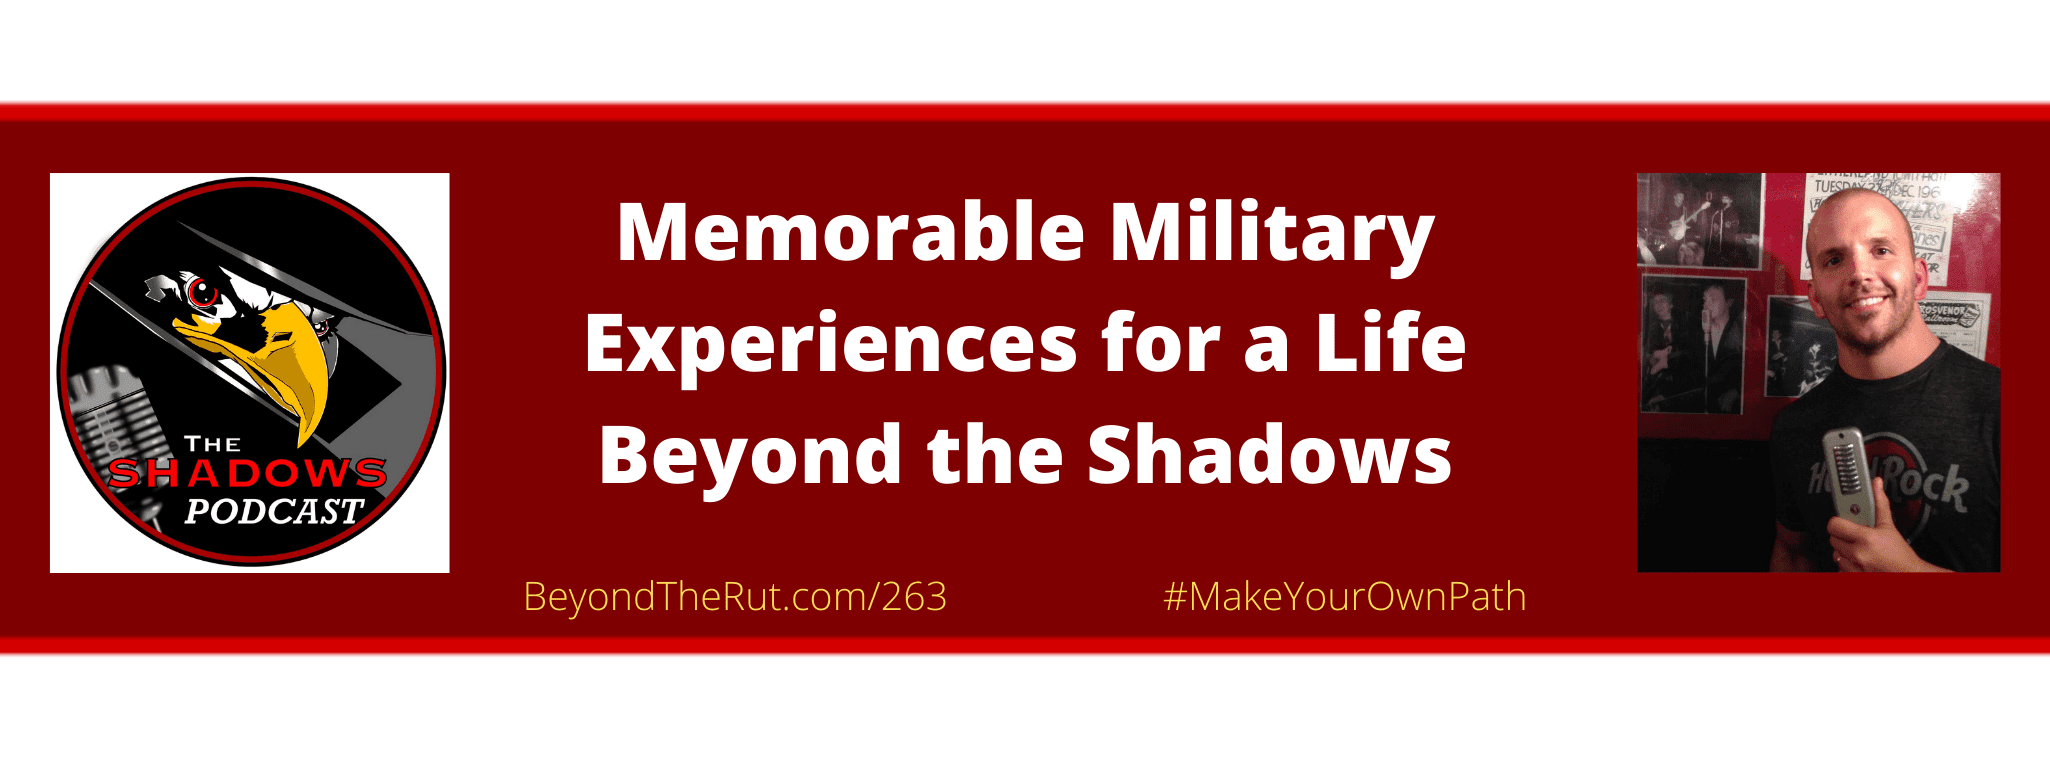 These memorable military experiences have shaped our views on leadership and life.